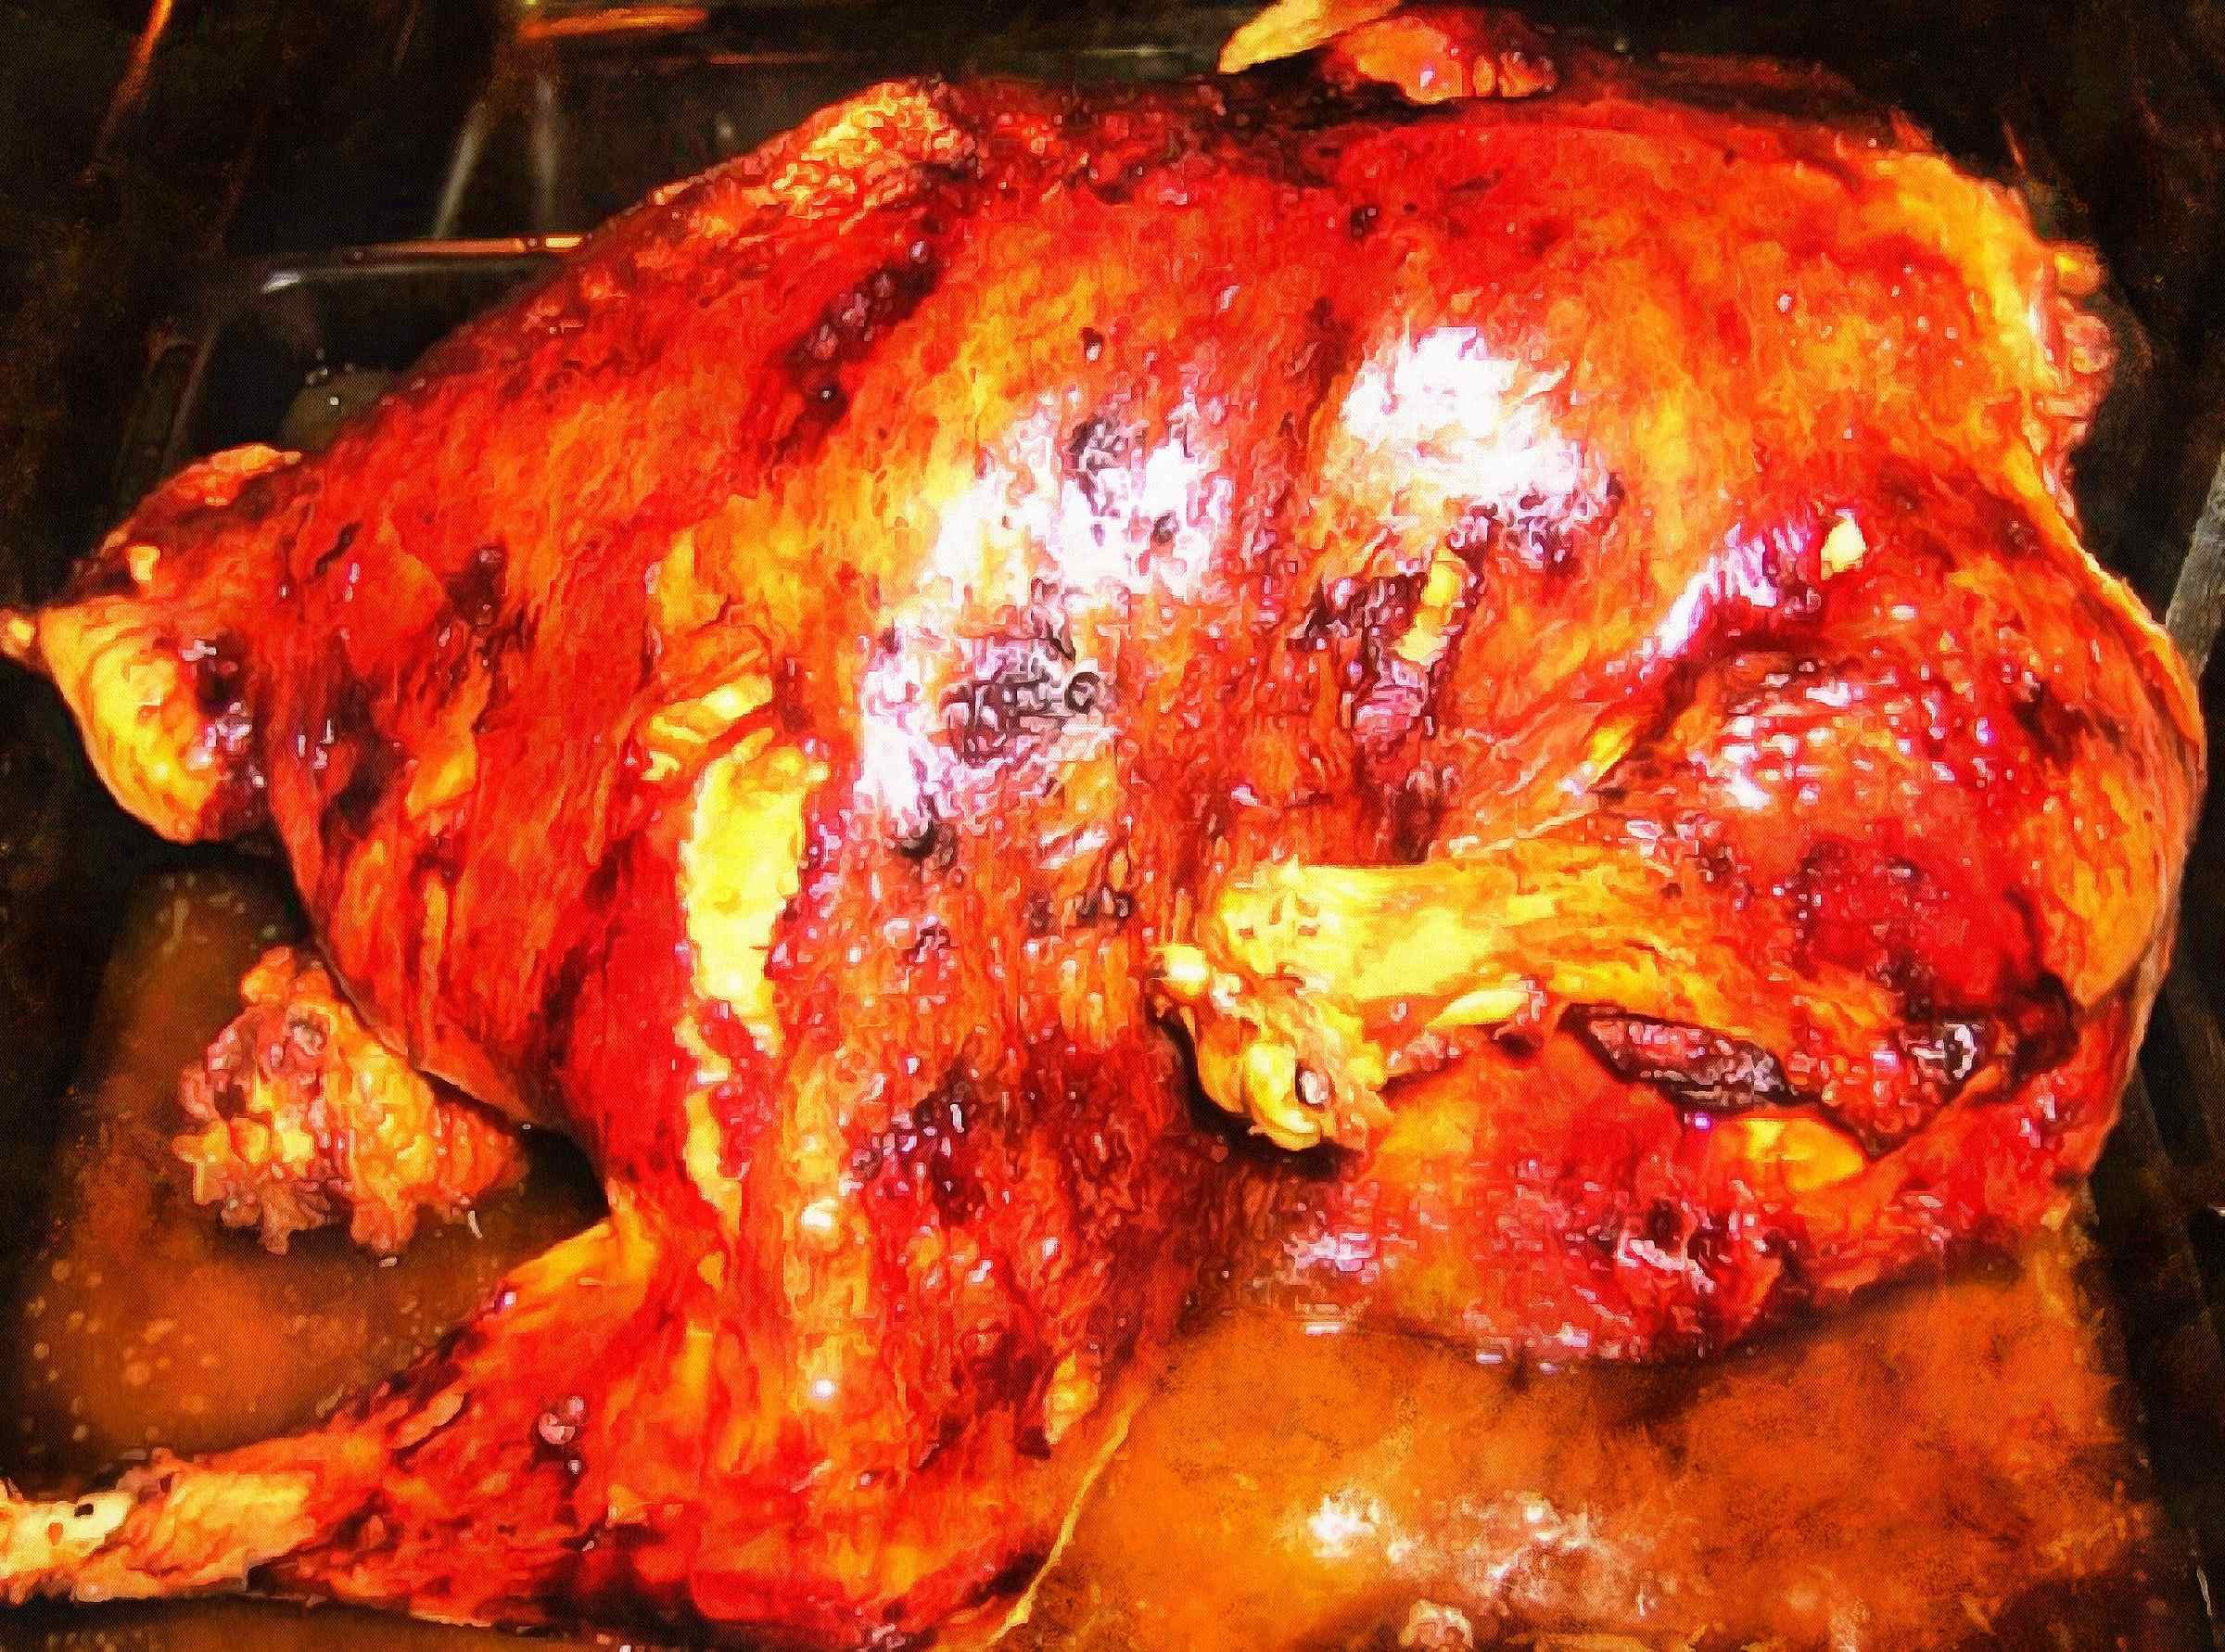 poultry, baked poultry, turkey, holiday turkey, roast turkey,  - thanksgiving, public domain images, stock free photos, free images, public domain photos, stock free images.